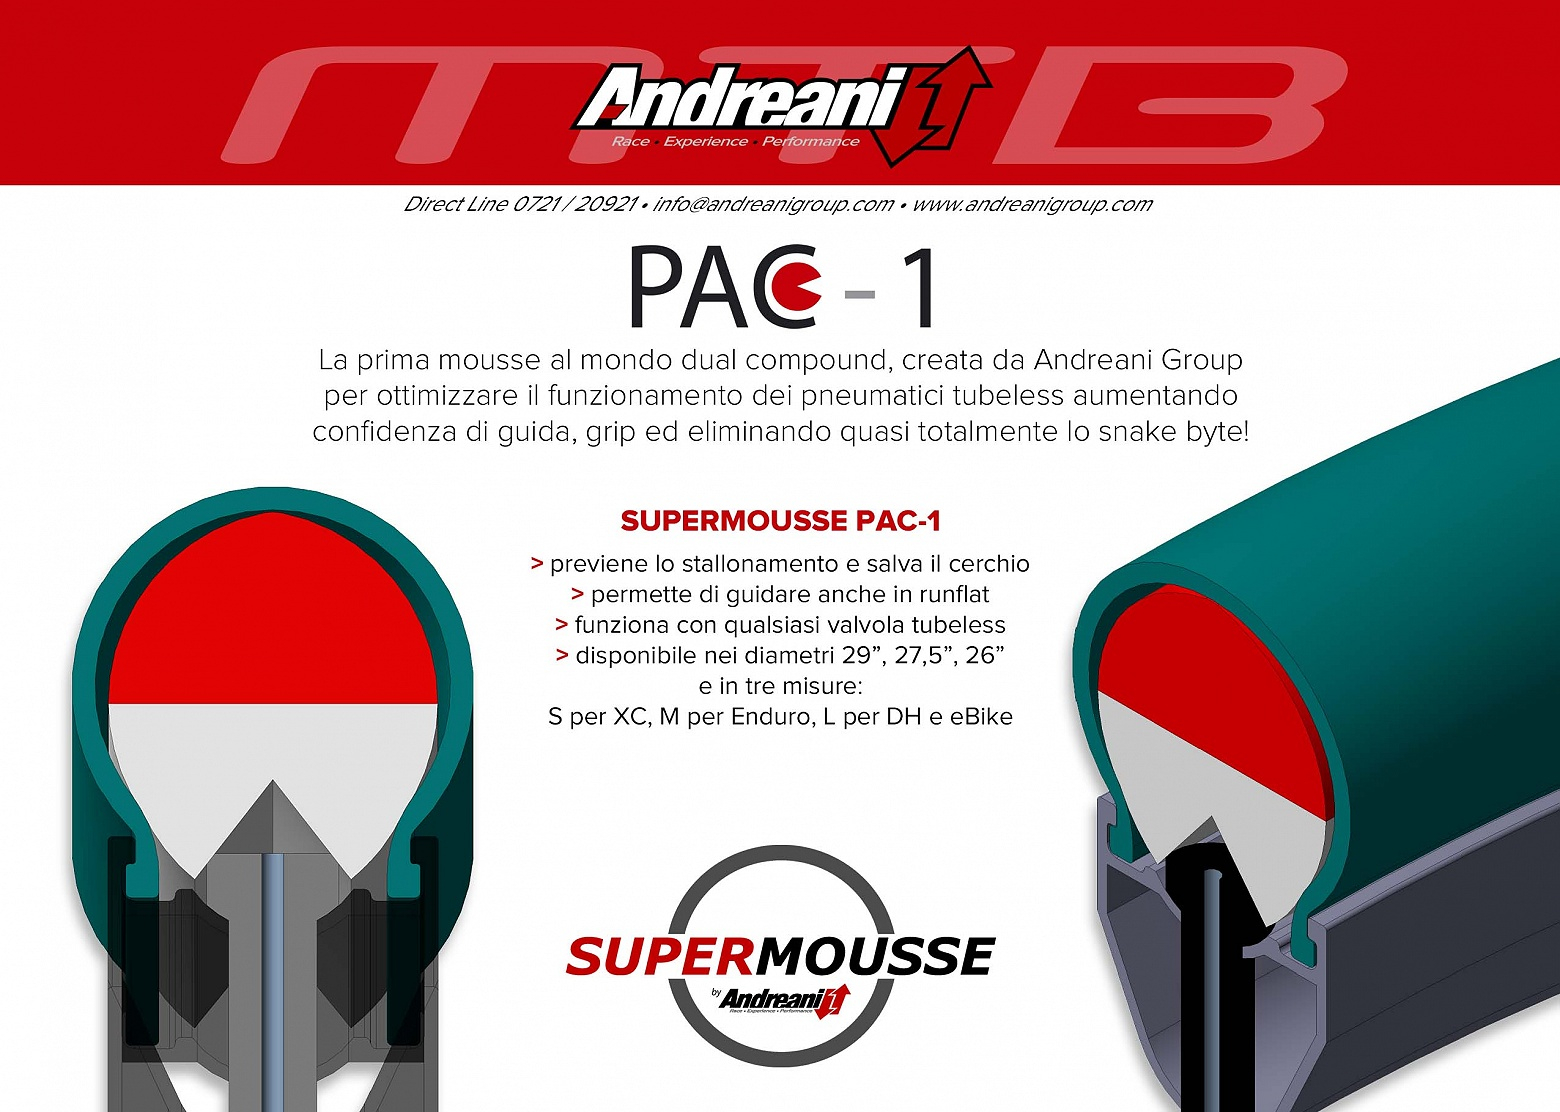 ANDREANI Inserto Supermousse D.35 Tg. S